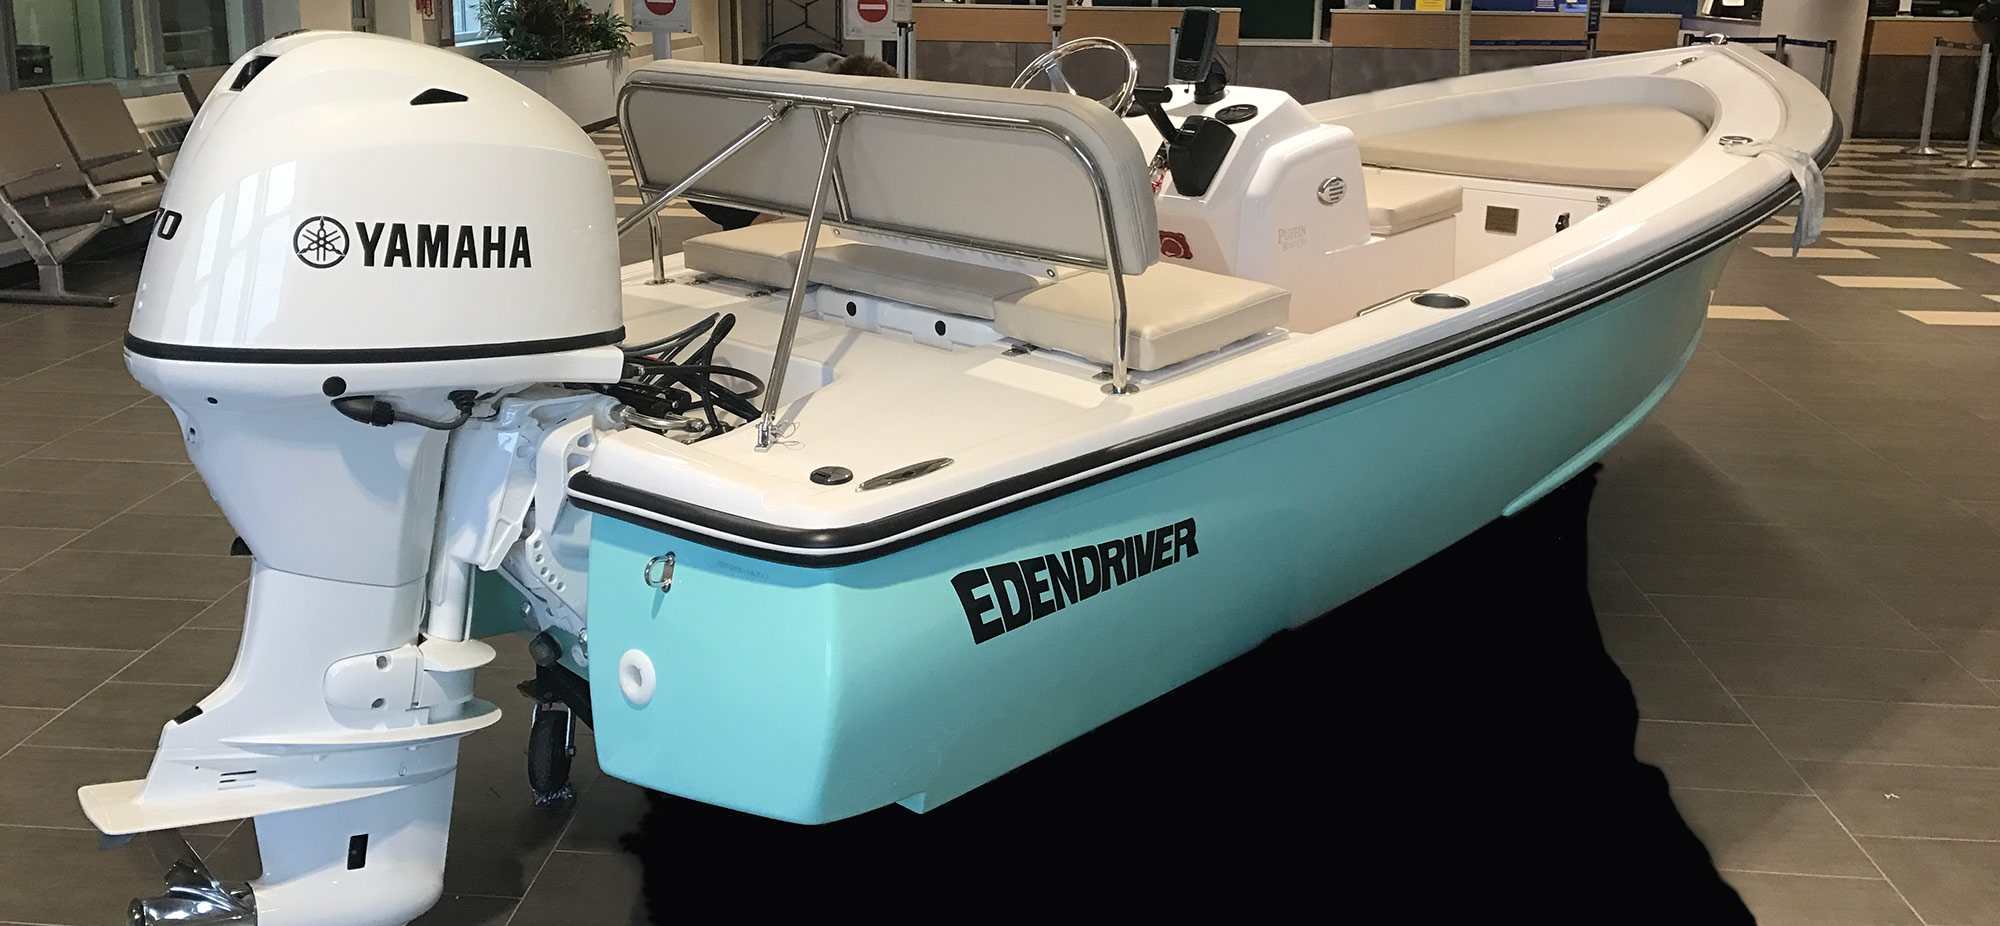 Edendriver by Puffin Boat Company at the Airport